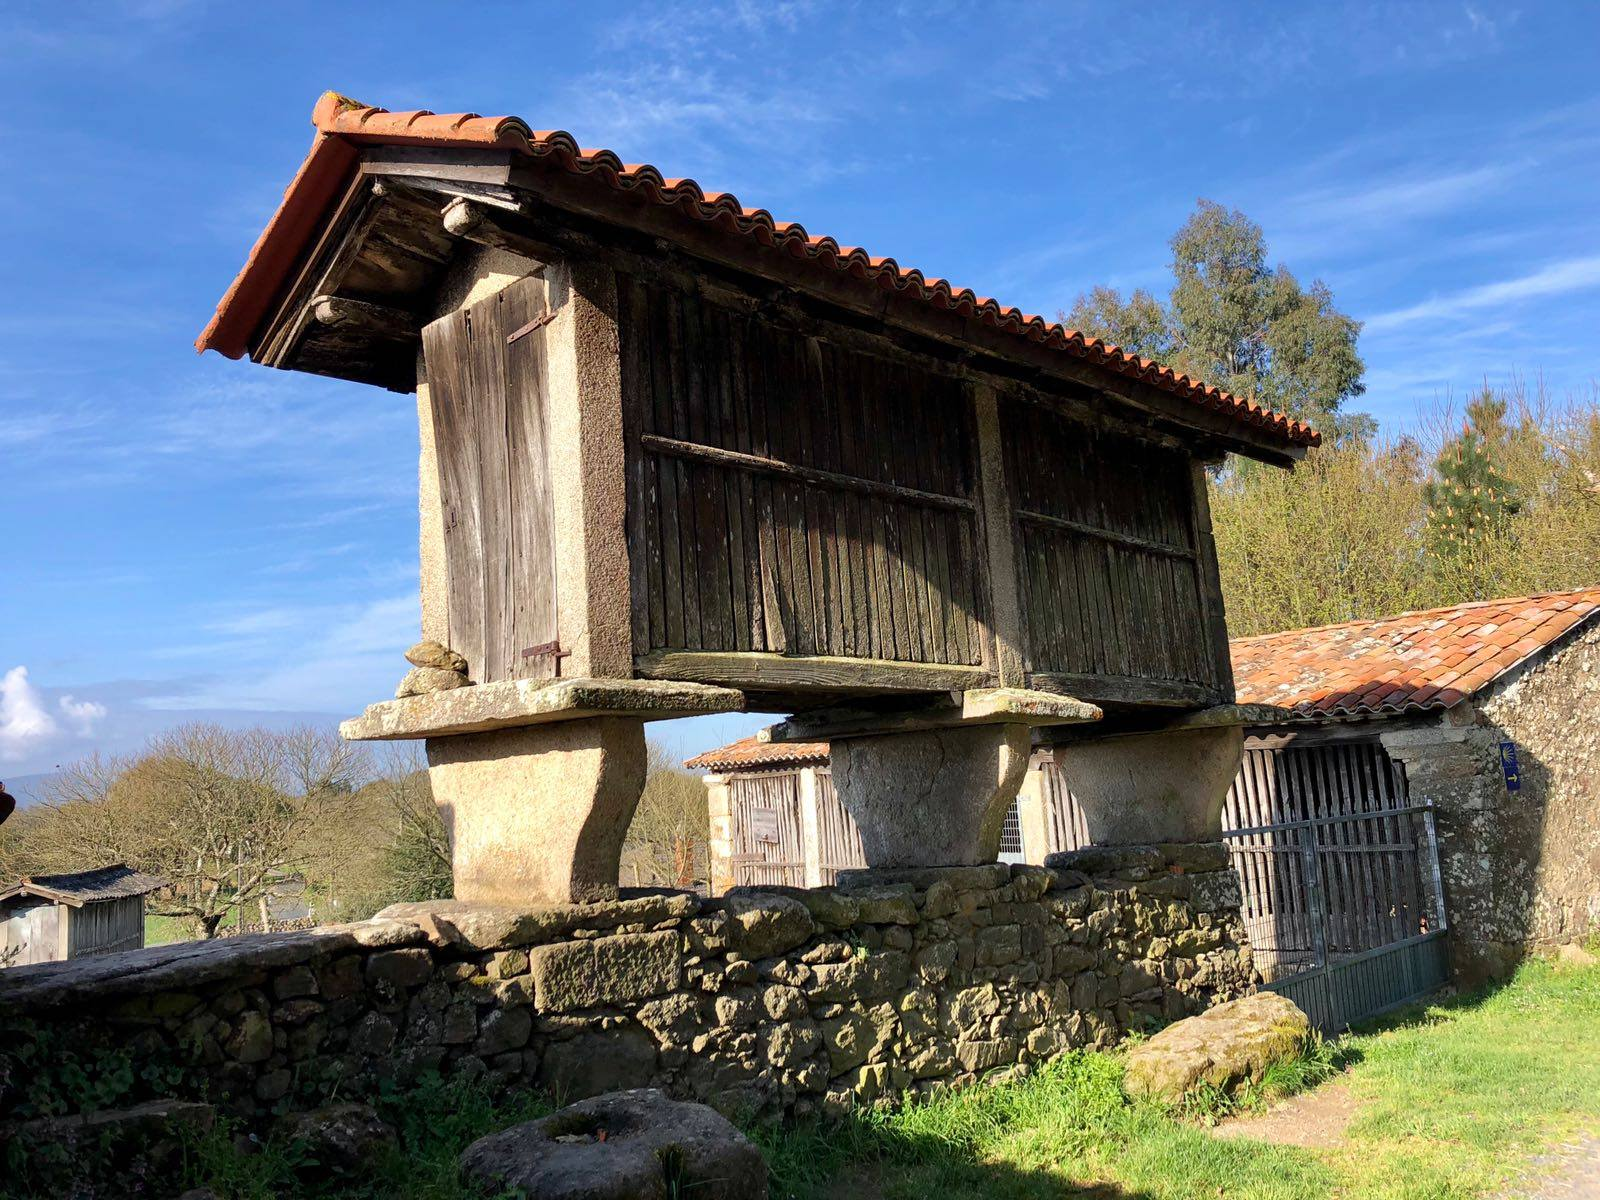 Hórreos are raised corn granaries that date back to the 15th century and can be seen throughout Galicia. Photo: © Authentic Journeys.